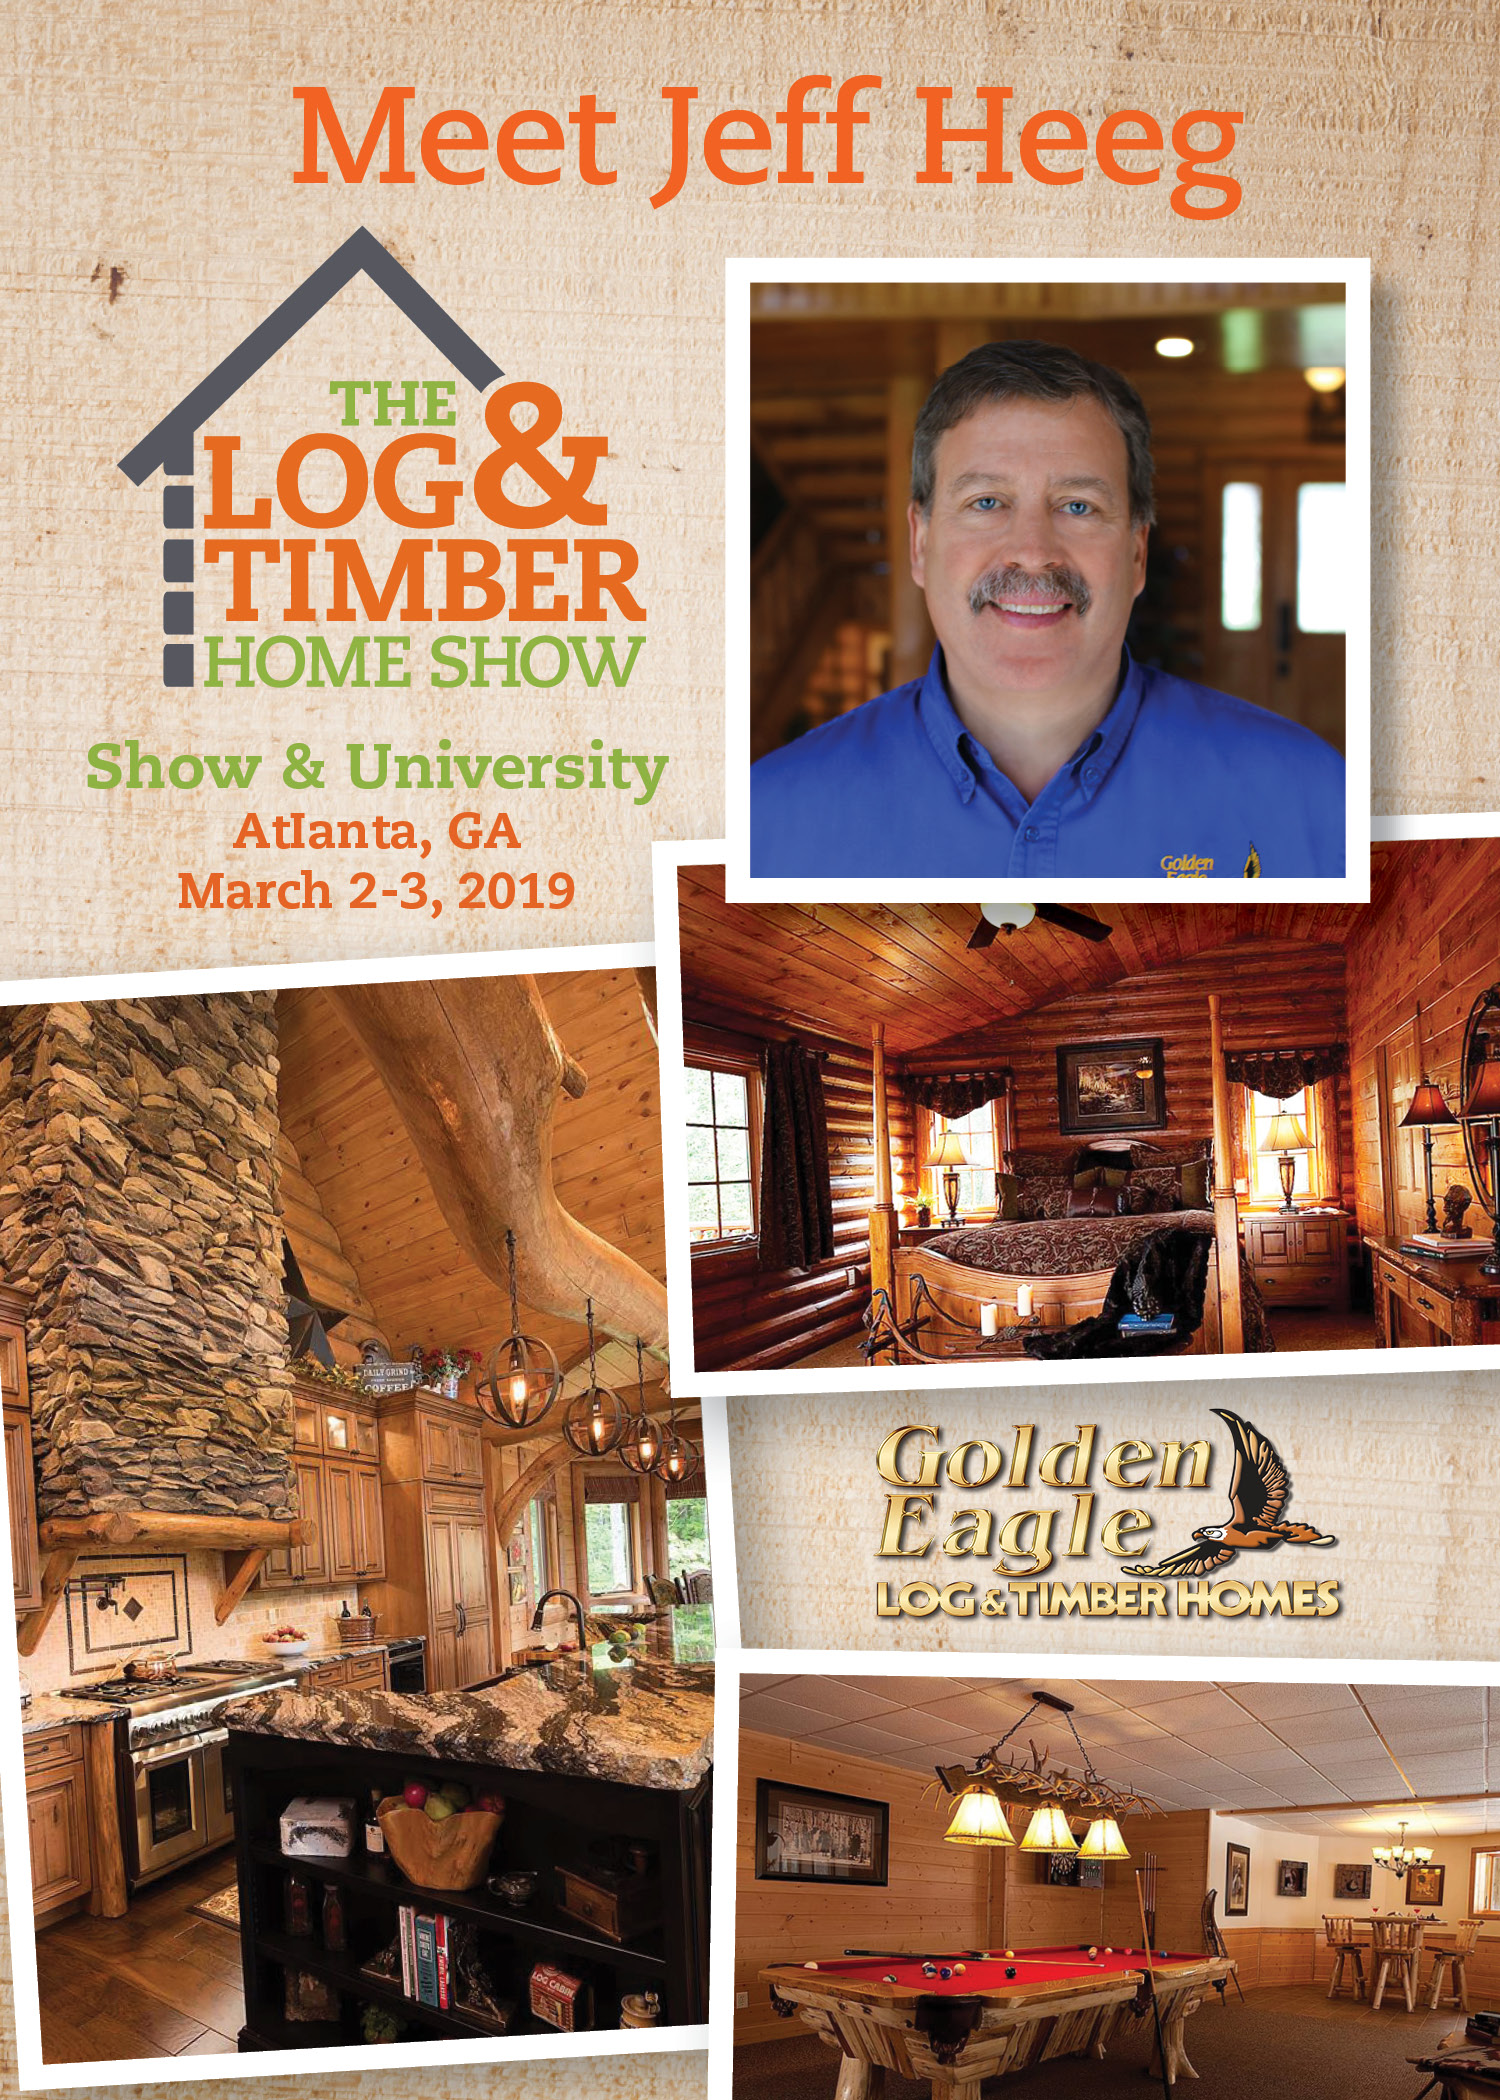 Atlanta, GA | Golden Eagle Log & Timber Home | Workshop | March 2-3, 2019 | Log & Timber Home Show